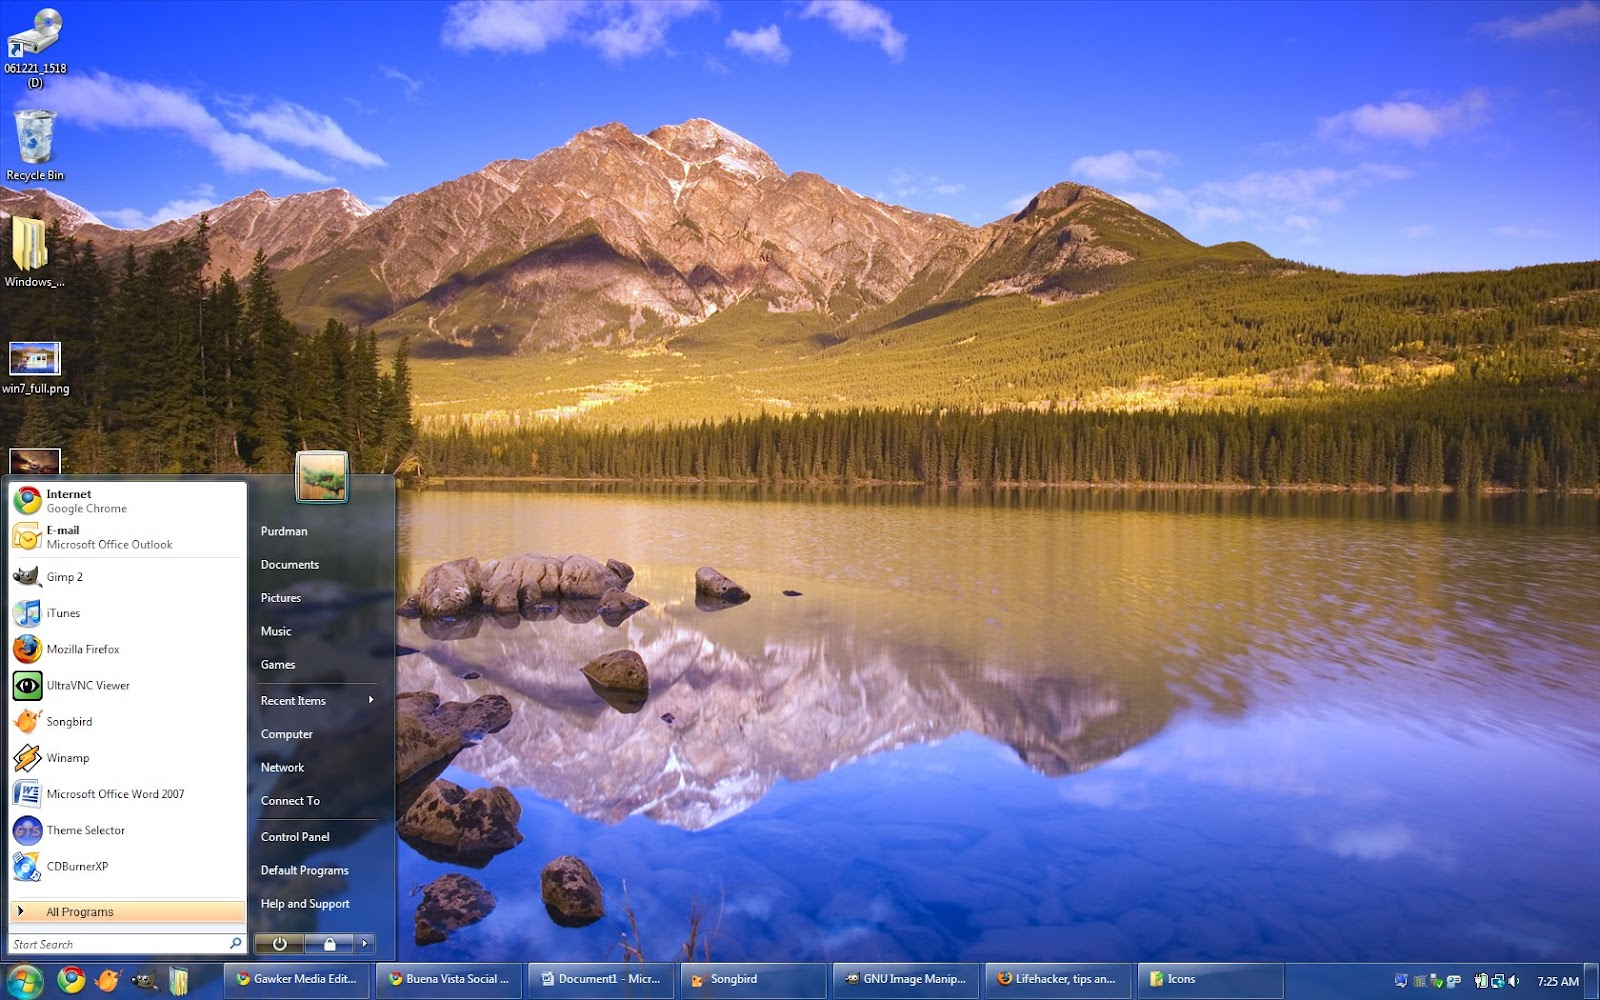 windows 7 desktop themes - Mobile wallpapers